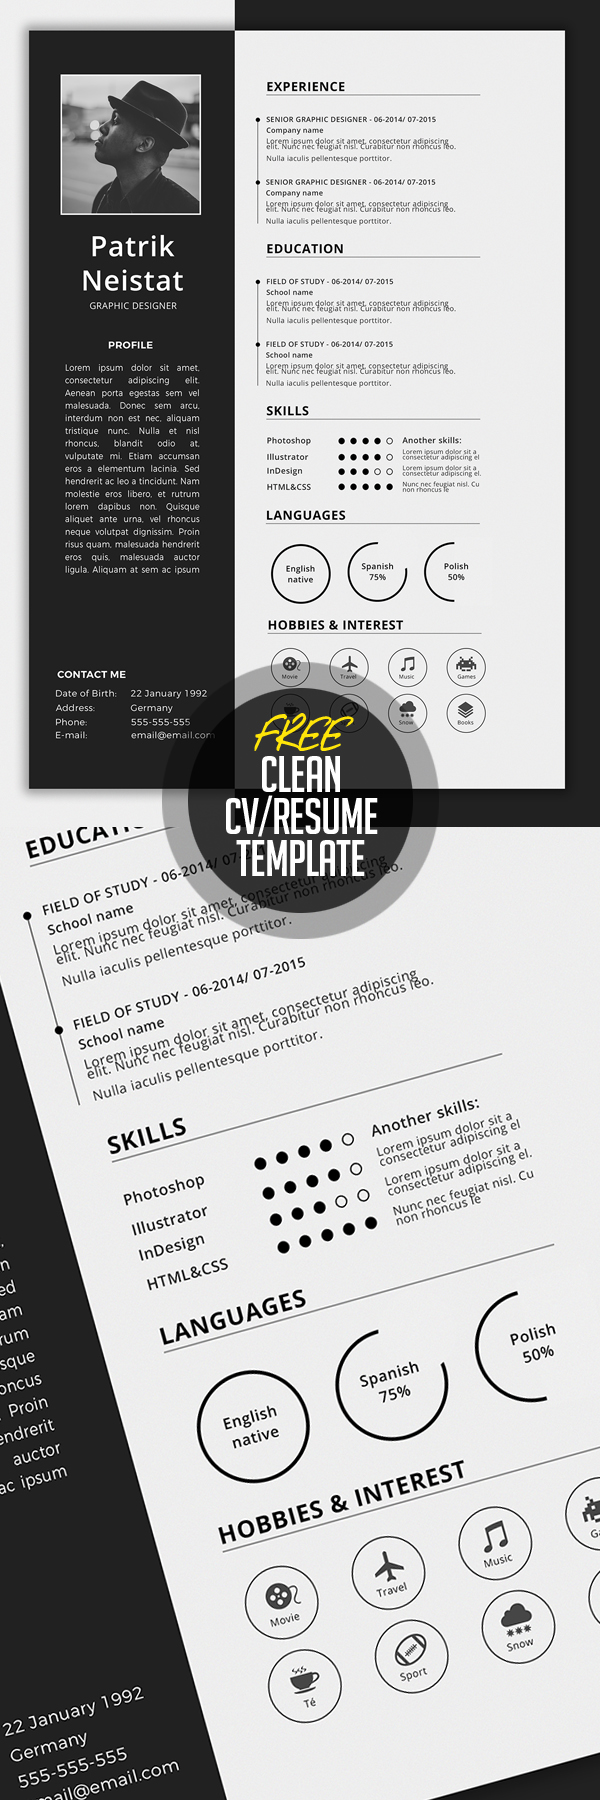 Simple CV/Resume Template Free Download  Creative Resume Template Free